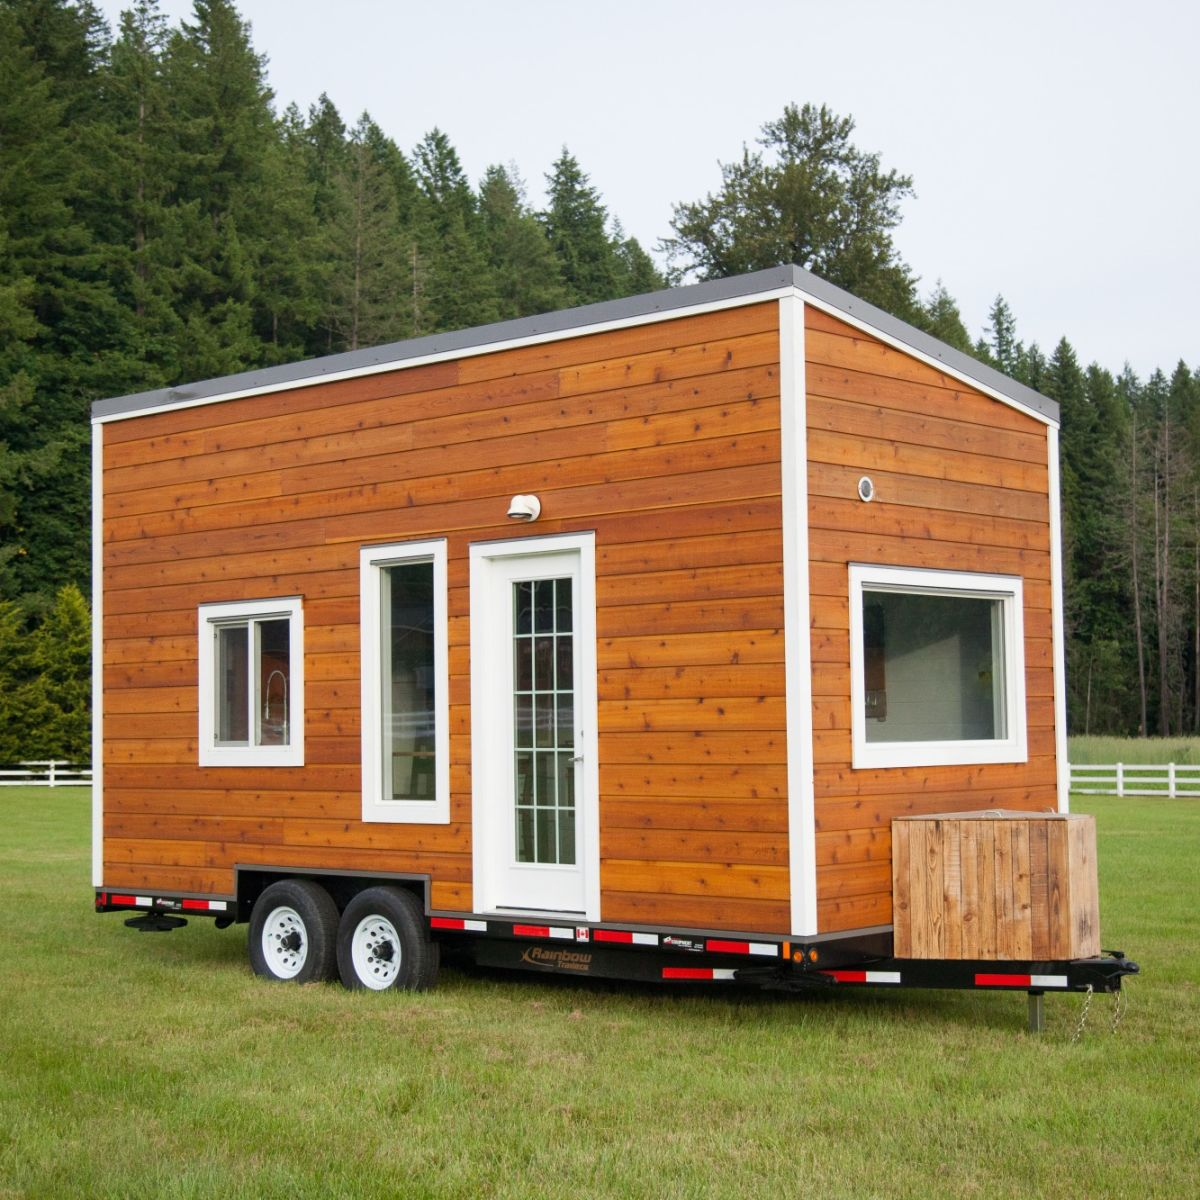 Tiny houses for sale in washington tiny houses for sale rent and builders tiny house listings tiny house listings